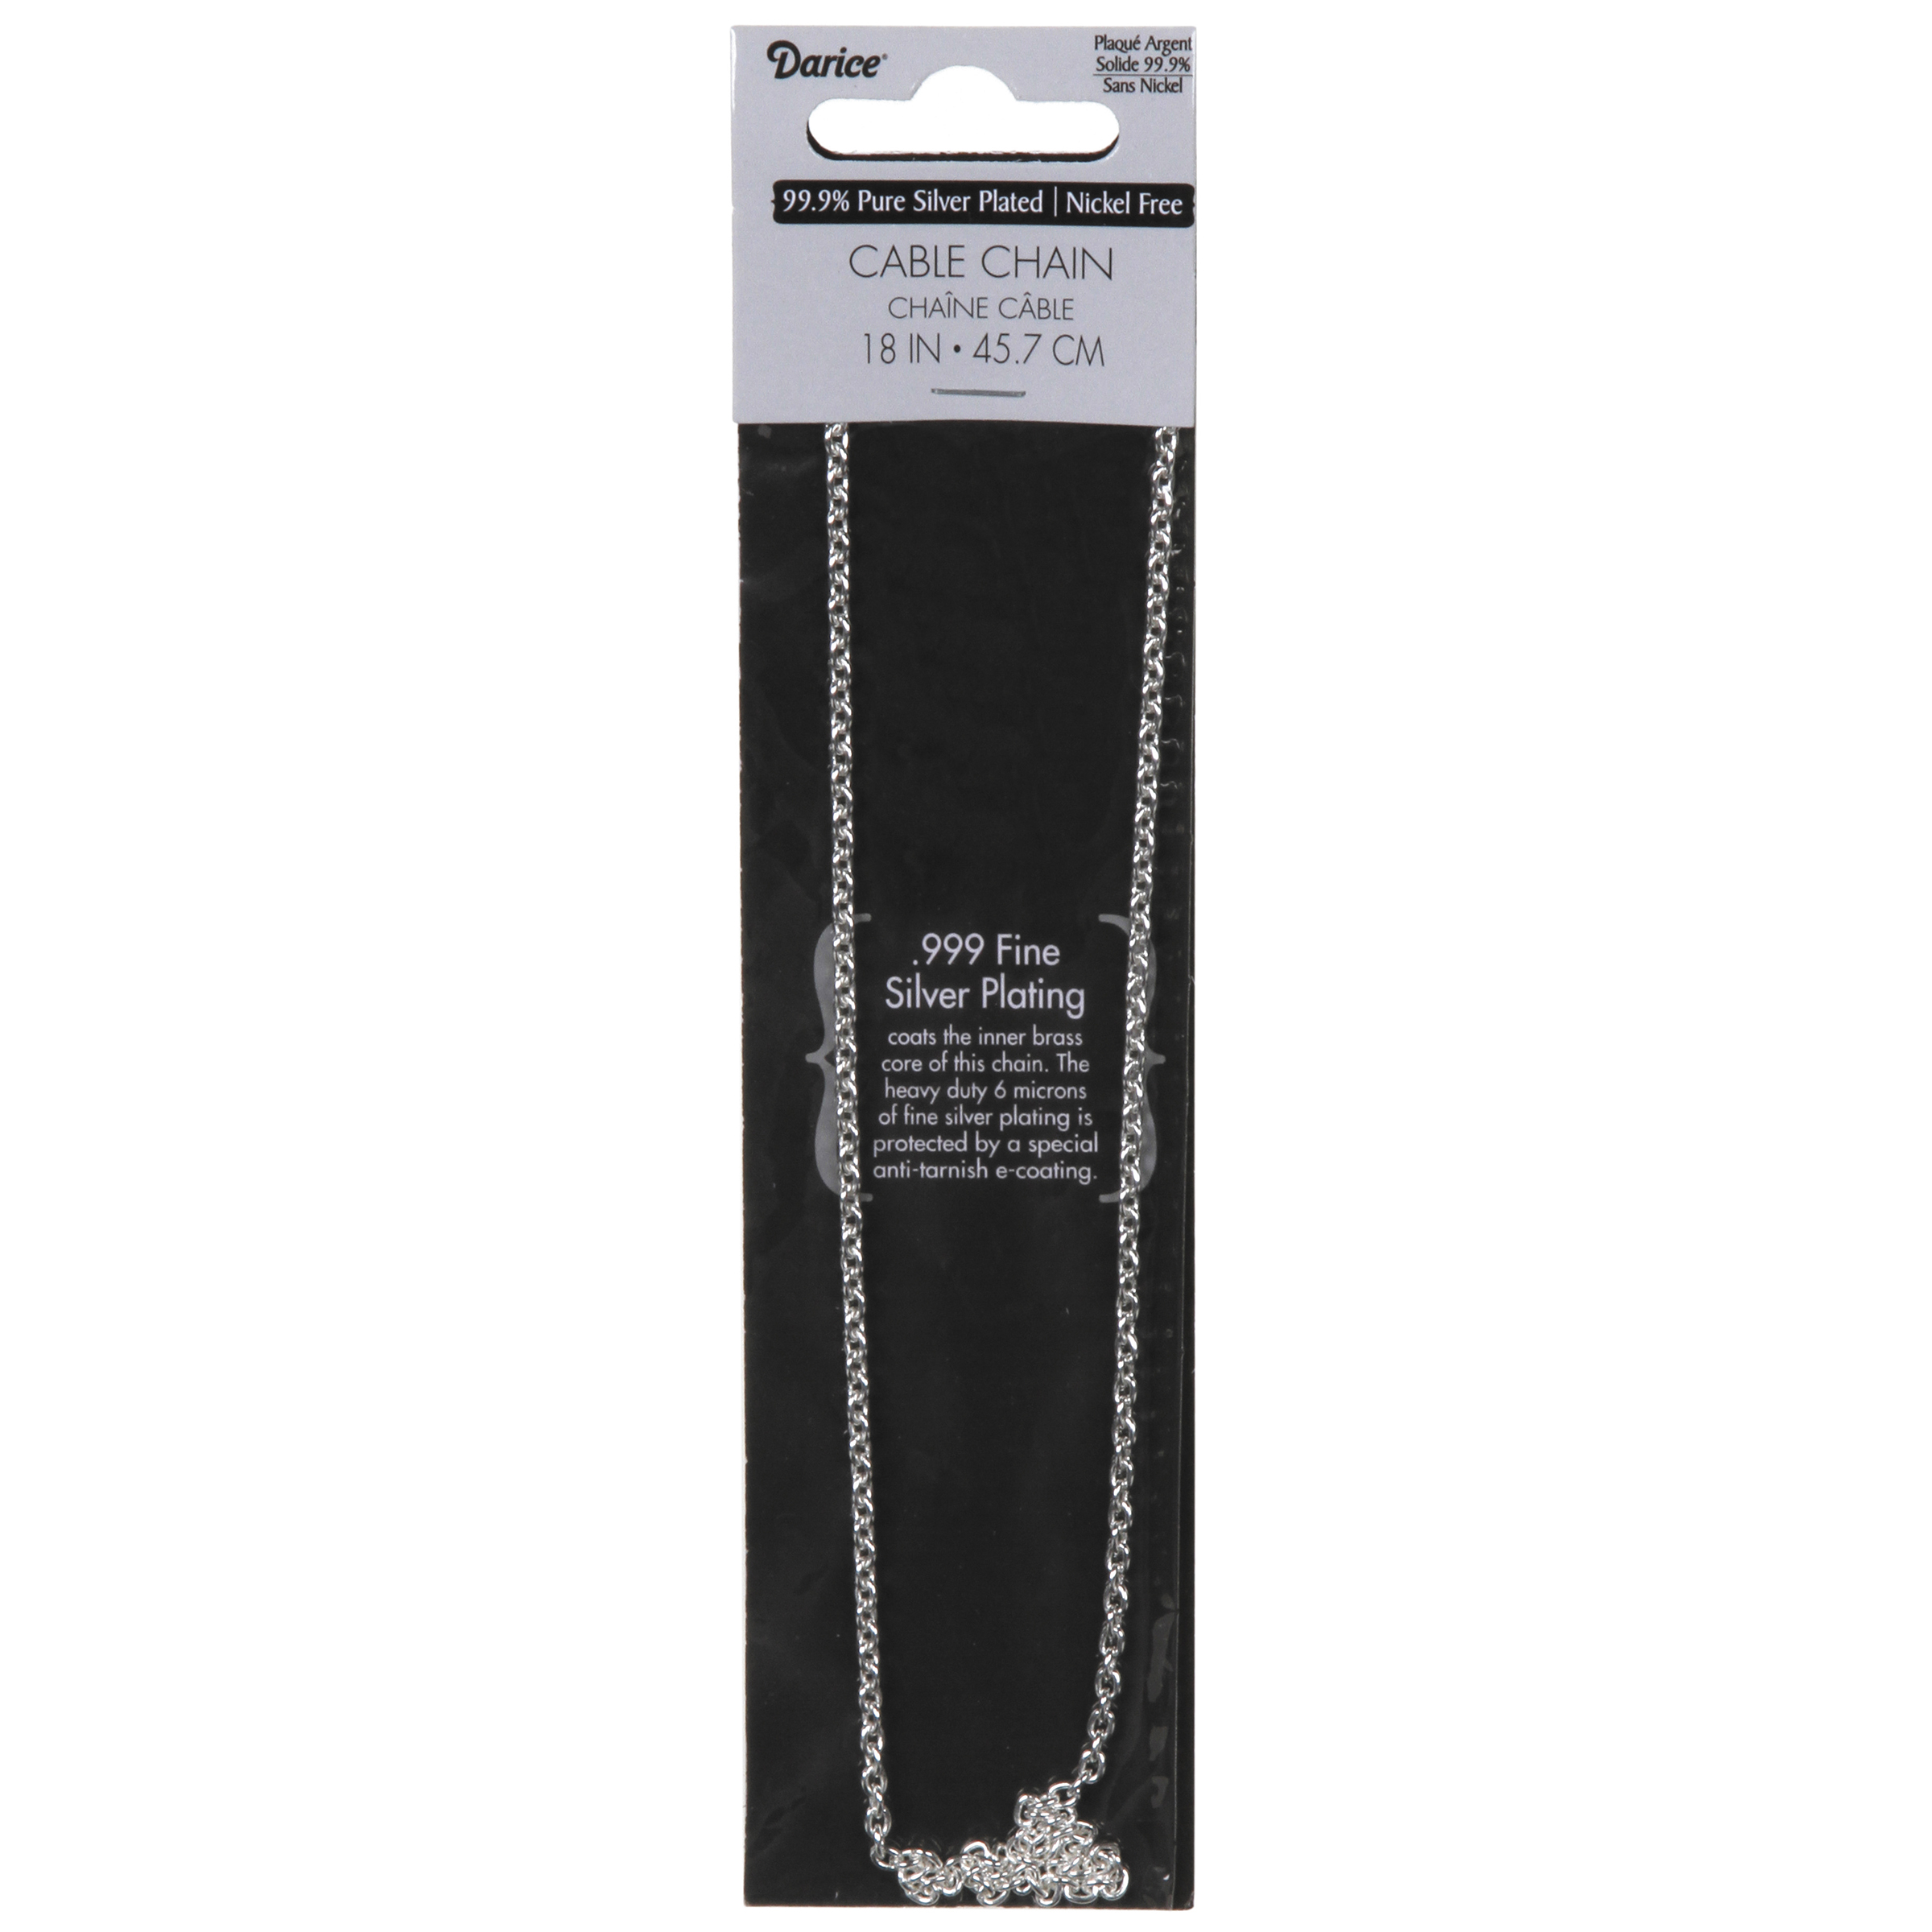 .80mm Silver Plated Cable Chain Necklace, 18 inches